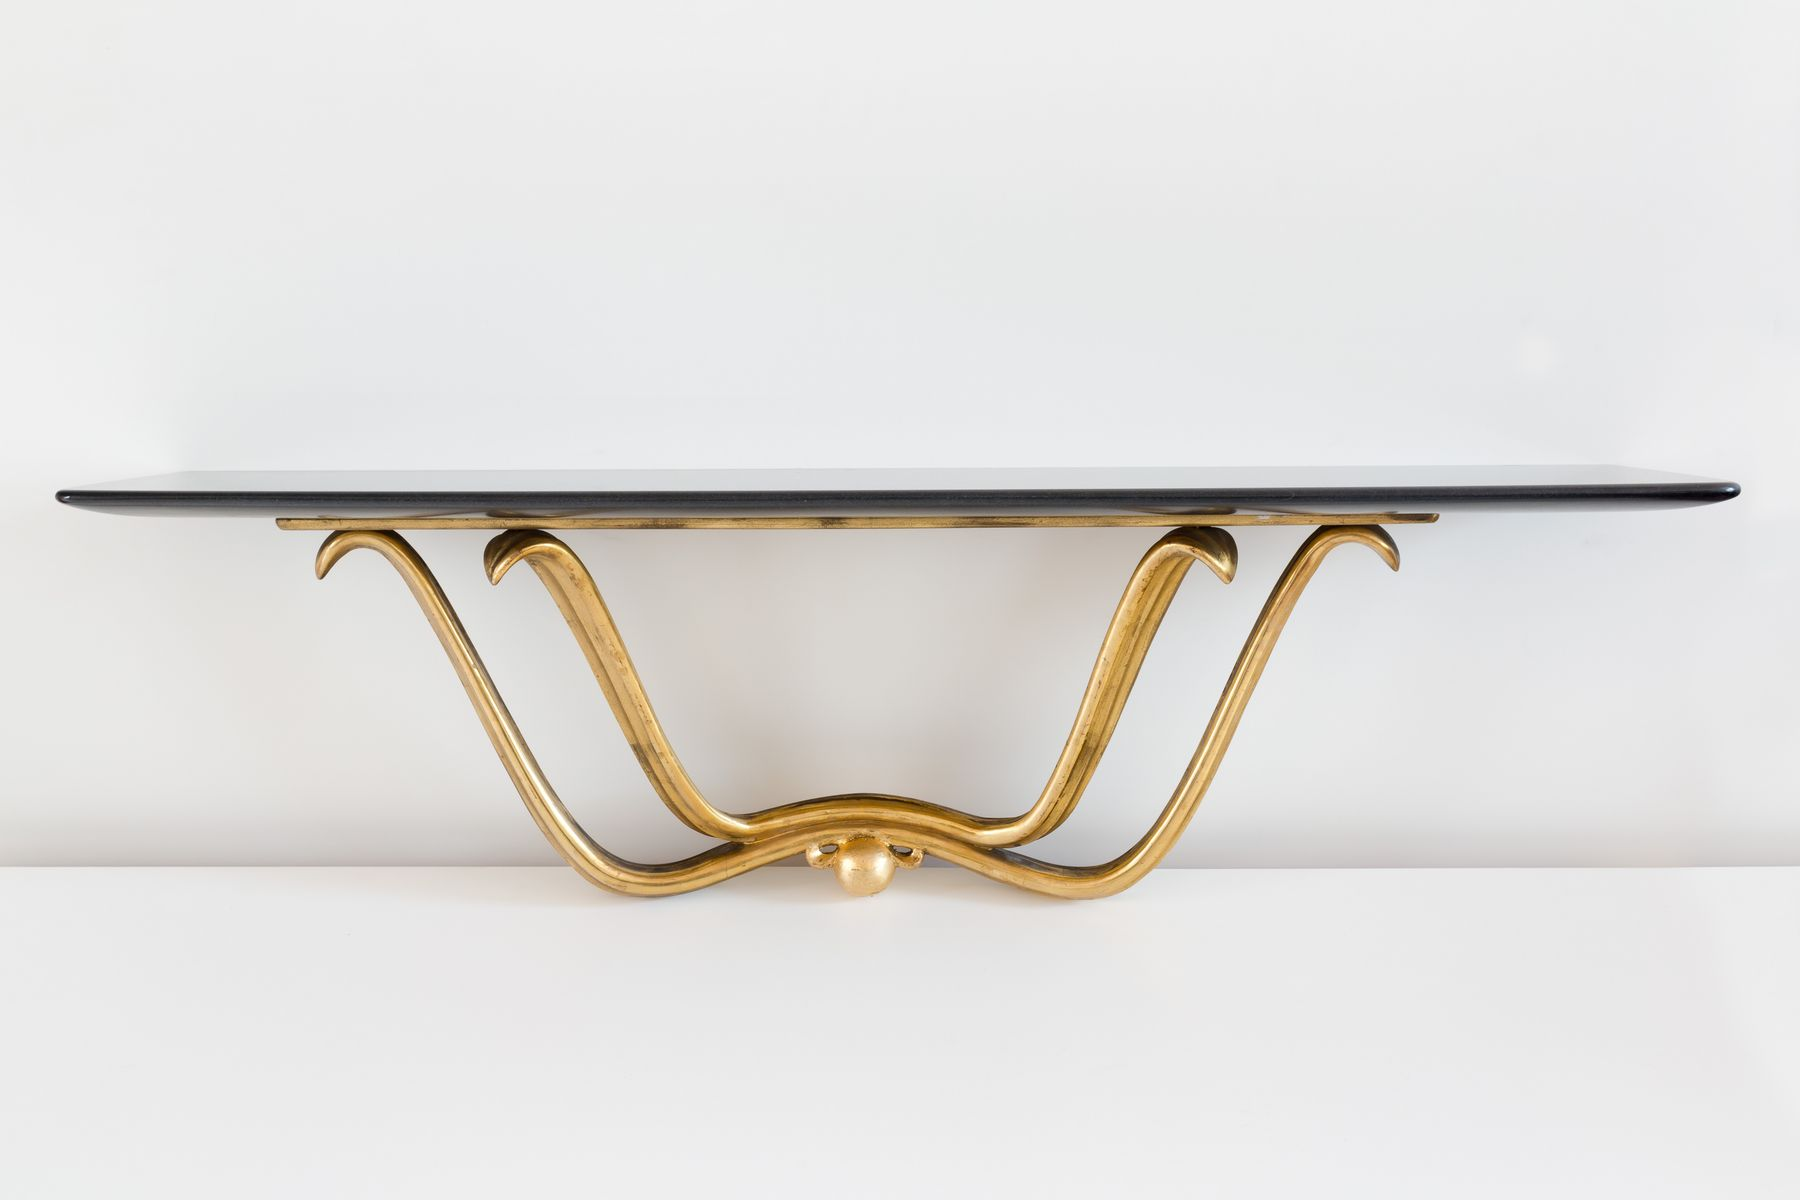 Floating Wall Console by Osvaldo Borsani 1950s for sale at Pamono